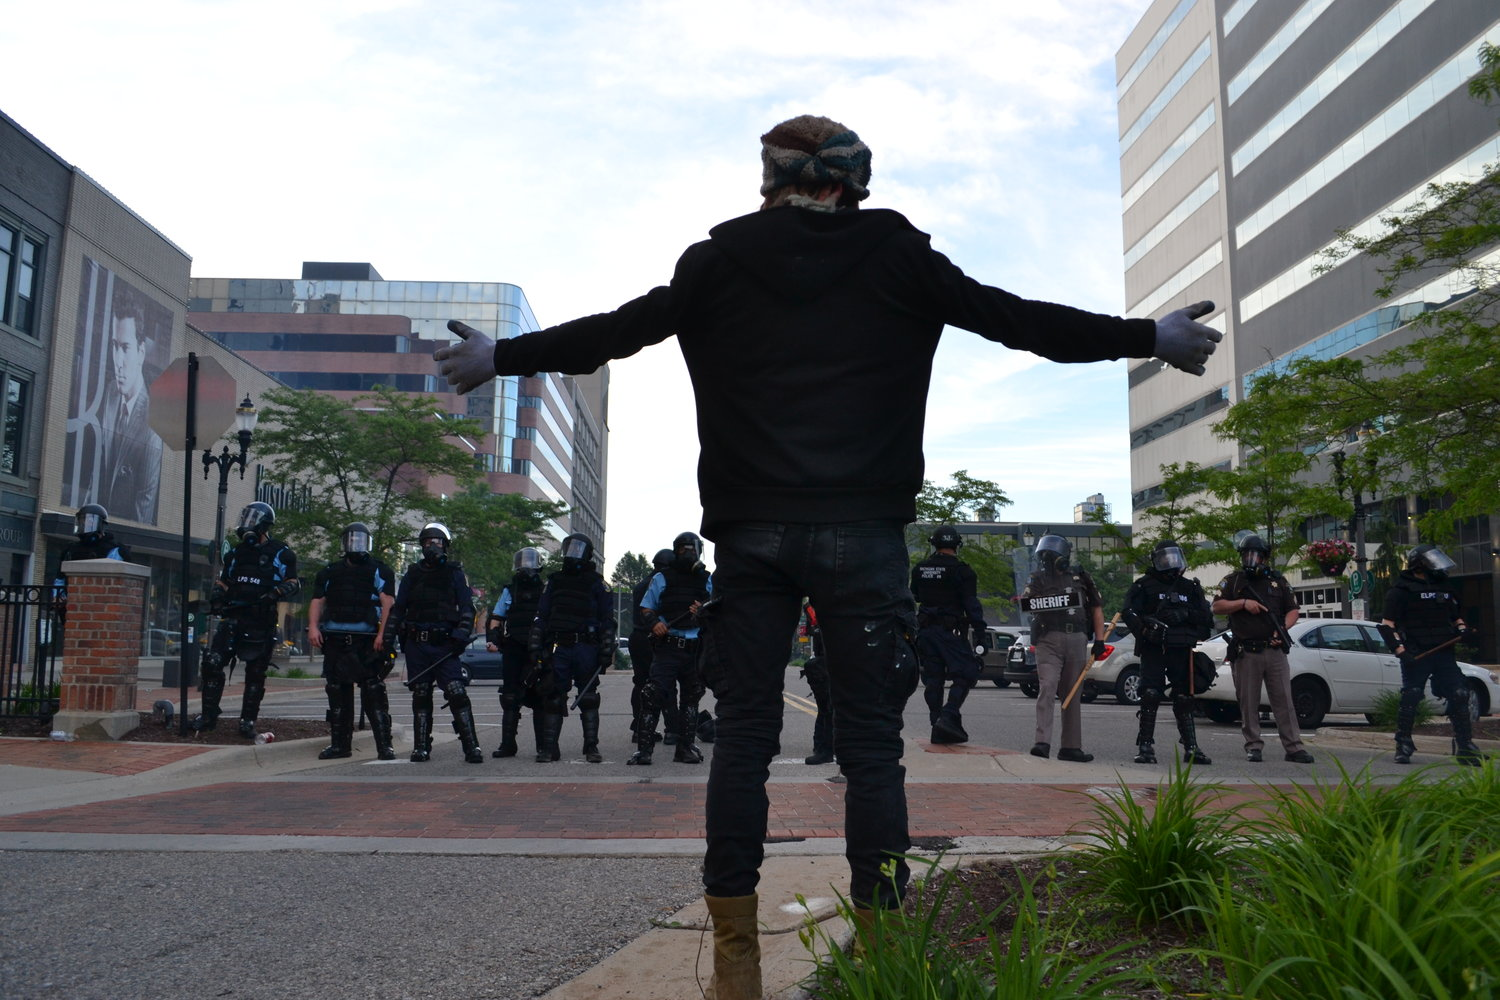 A protester confronts a lineup of police.